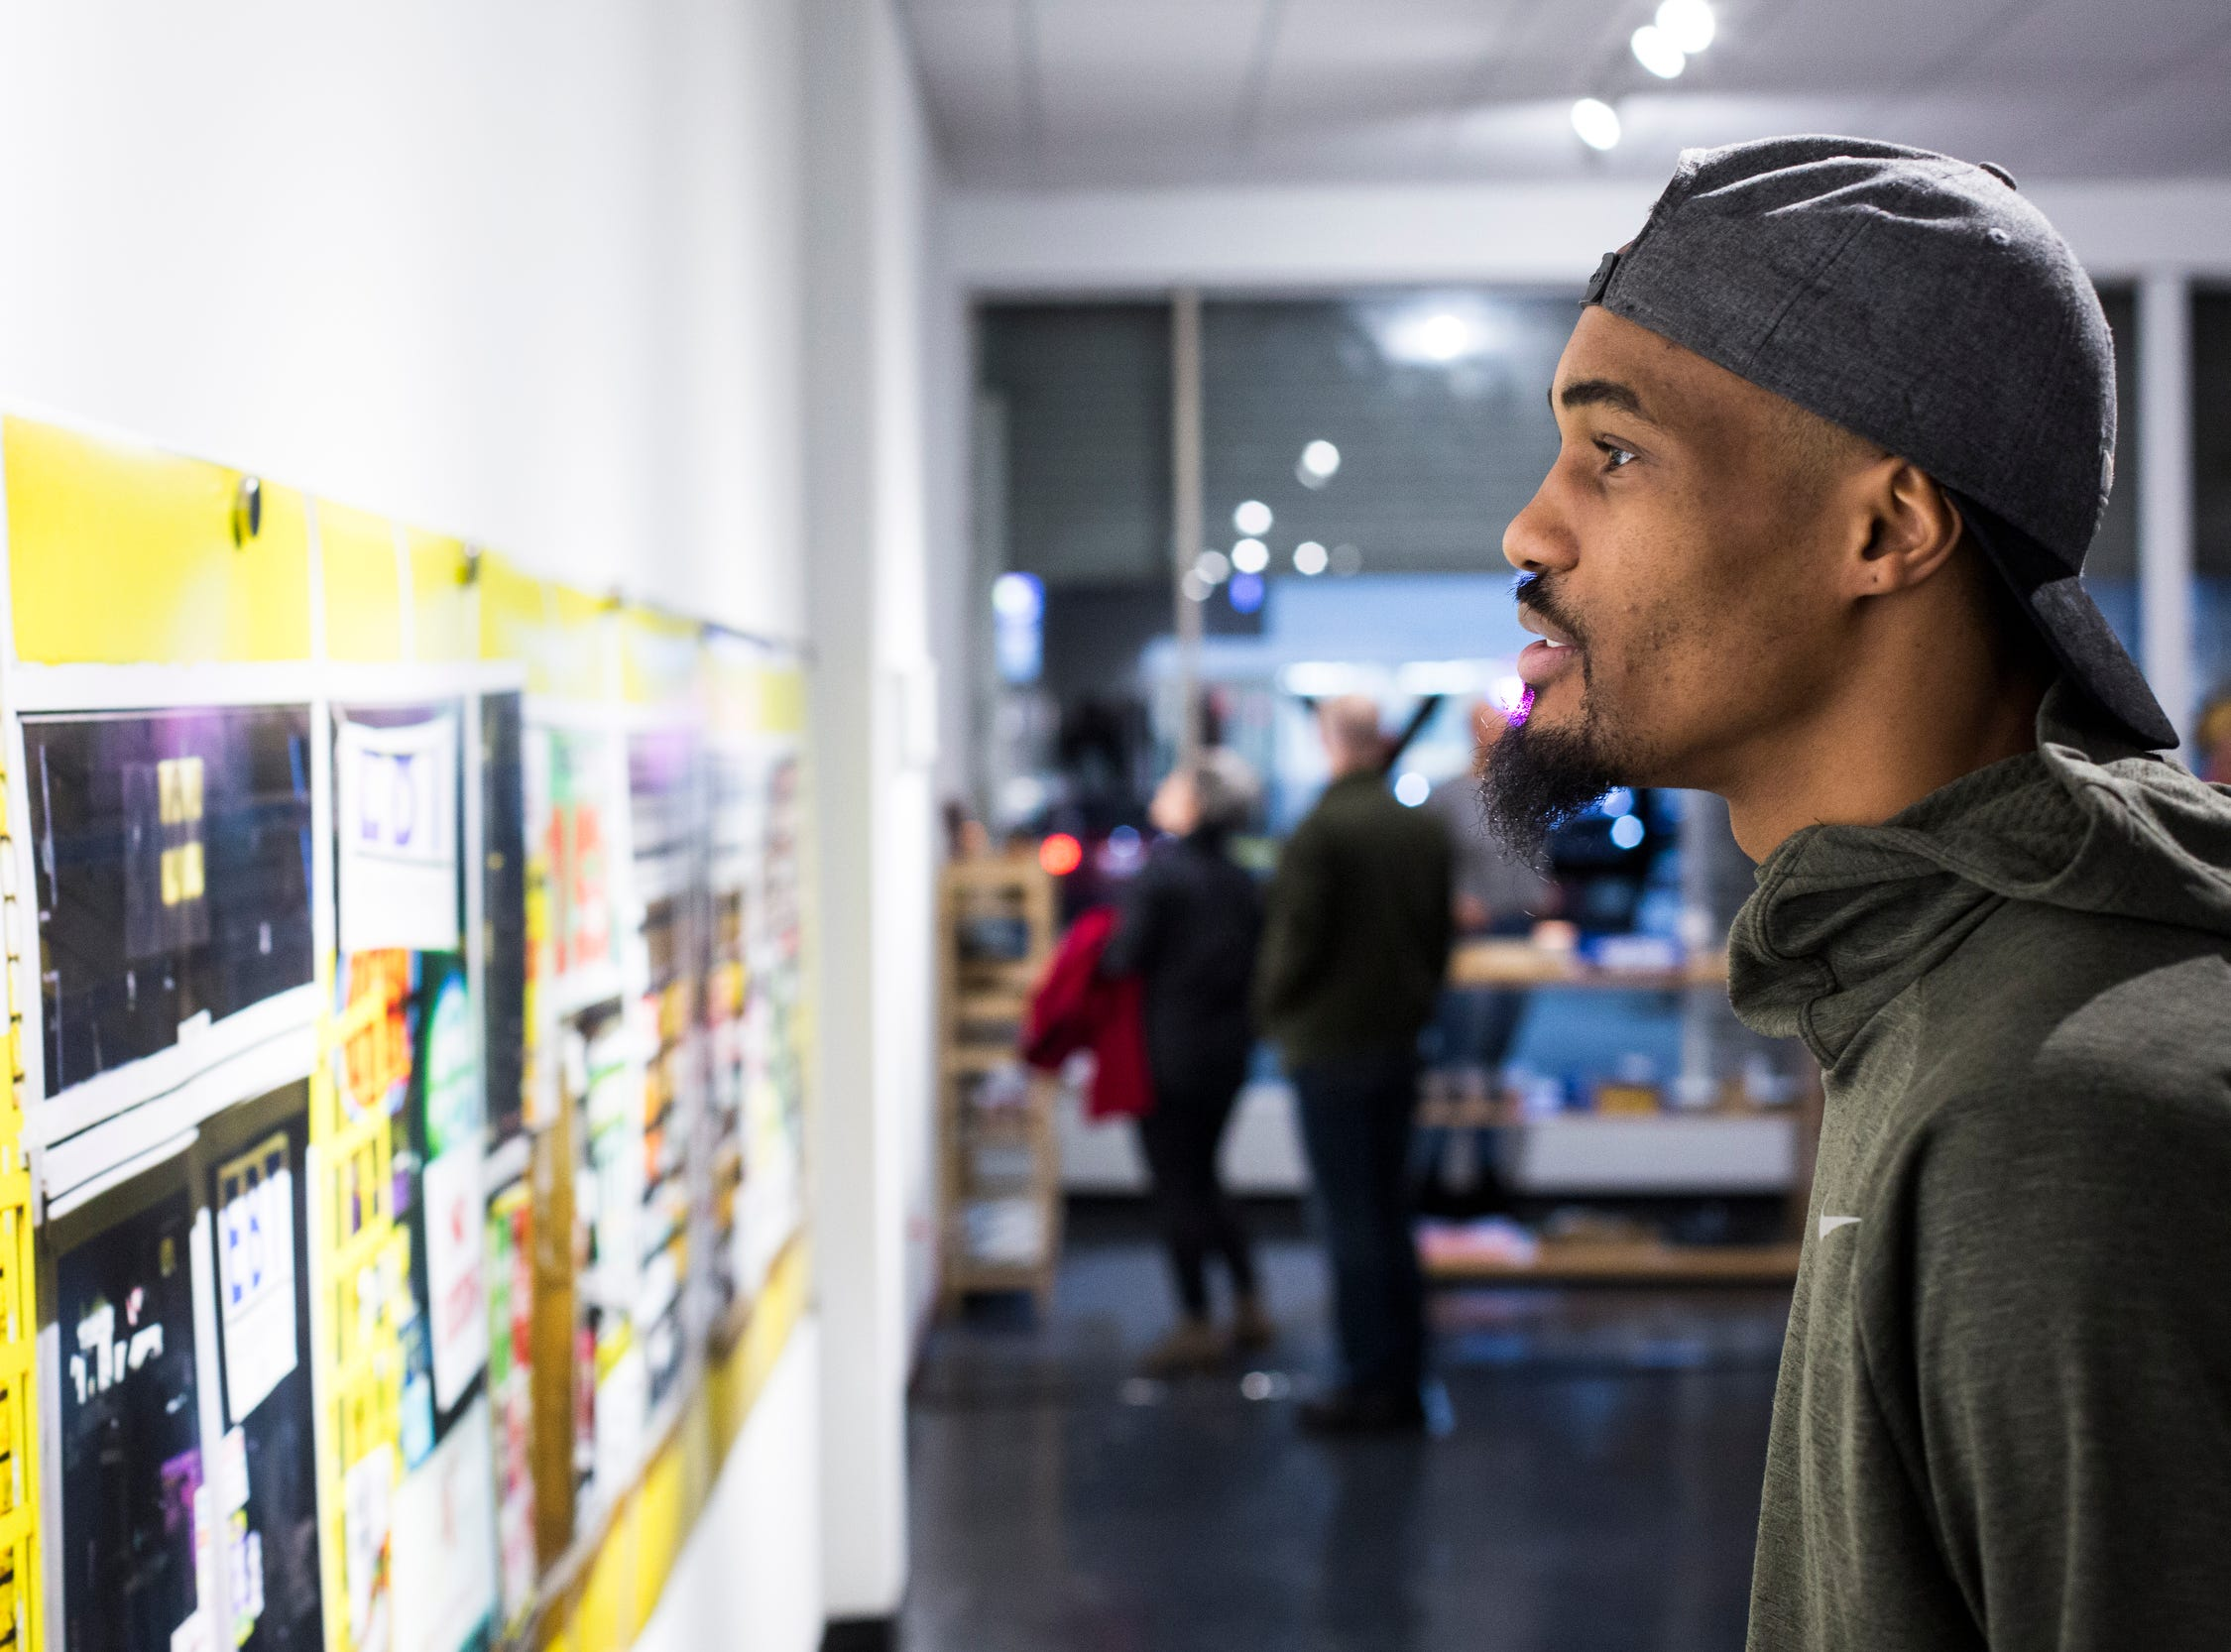 February 08, 2019 - Kerrier Tappin looks at work during the PHTGRPHS show featuring work by Lester Merriweather and Lawrence Matthews at The CMPLX. The CMPLX, a gallery, office and work space for The Collective, is located at 2234 Lamar Ave. in the Lamar Airways Shopping Center in Orange Mound.